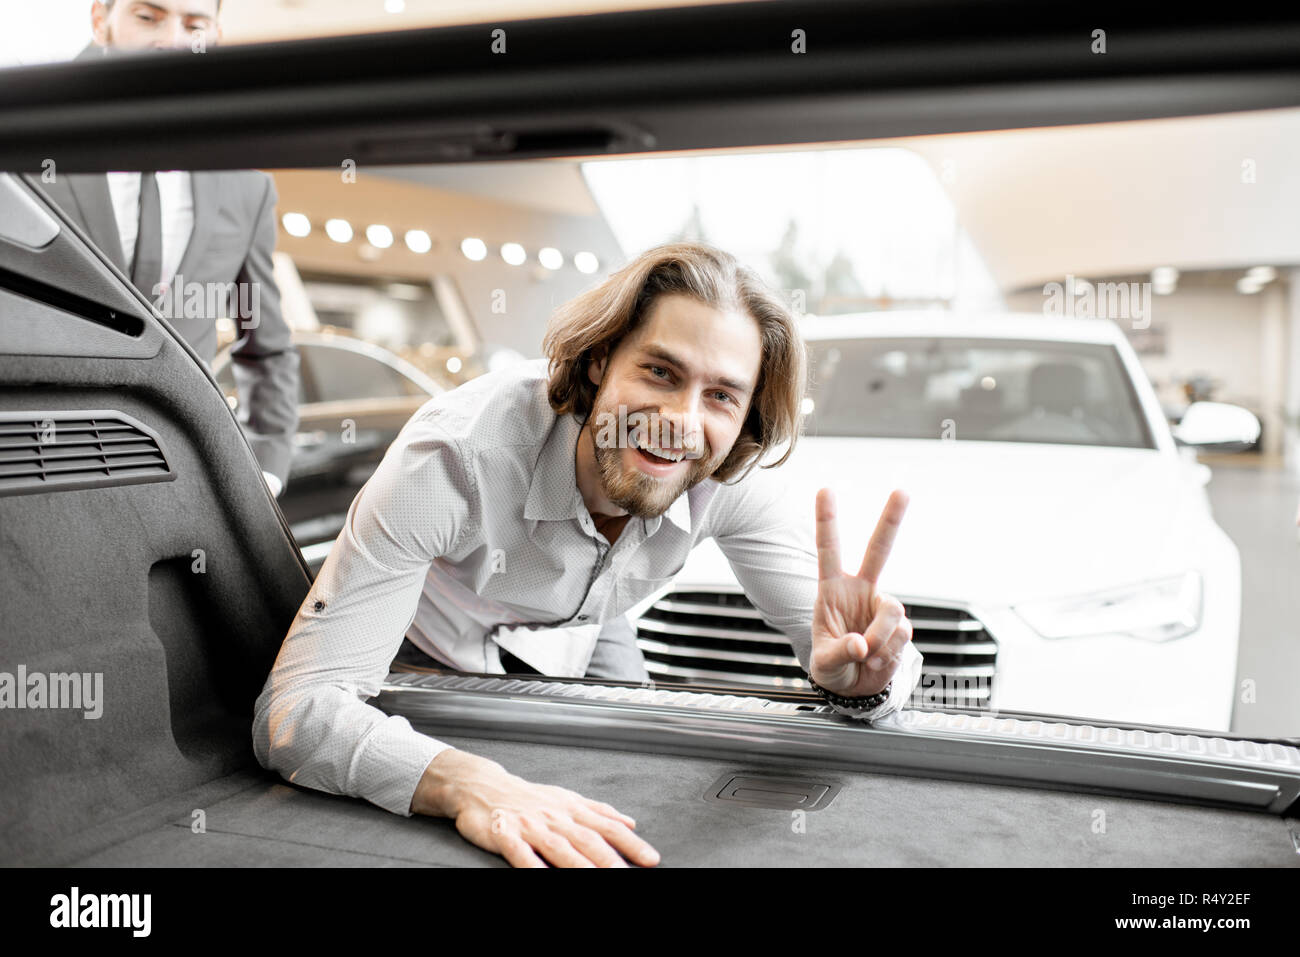 Funny portrait of a young man looking in the trunk of a new car in the showroom - Stock Image